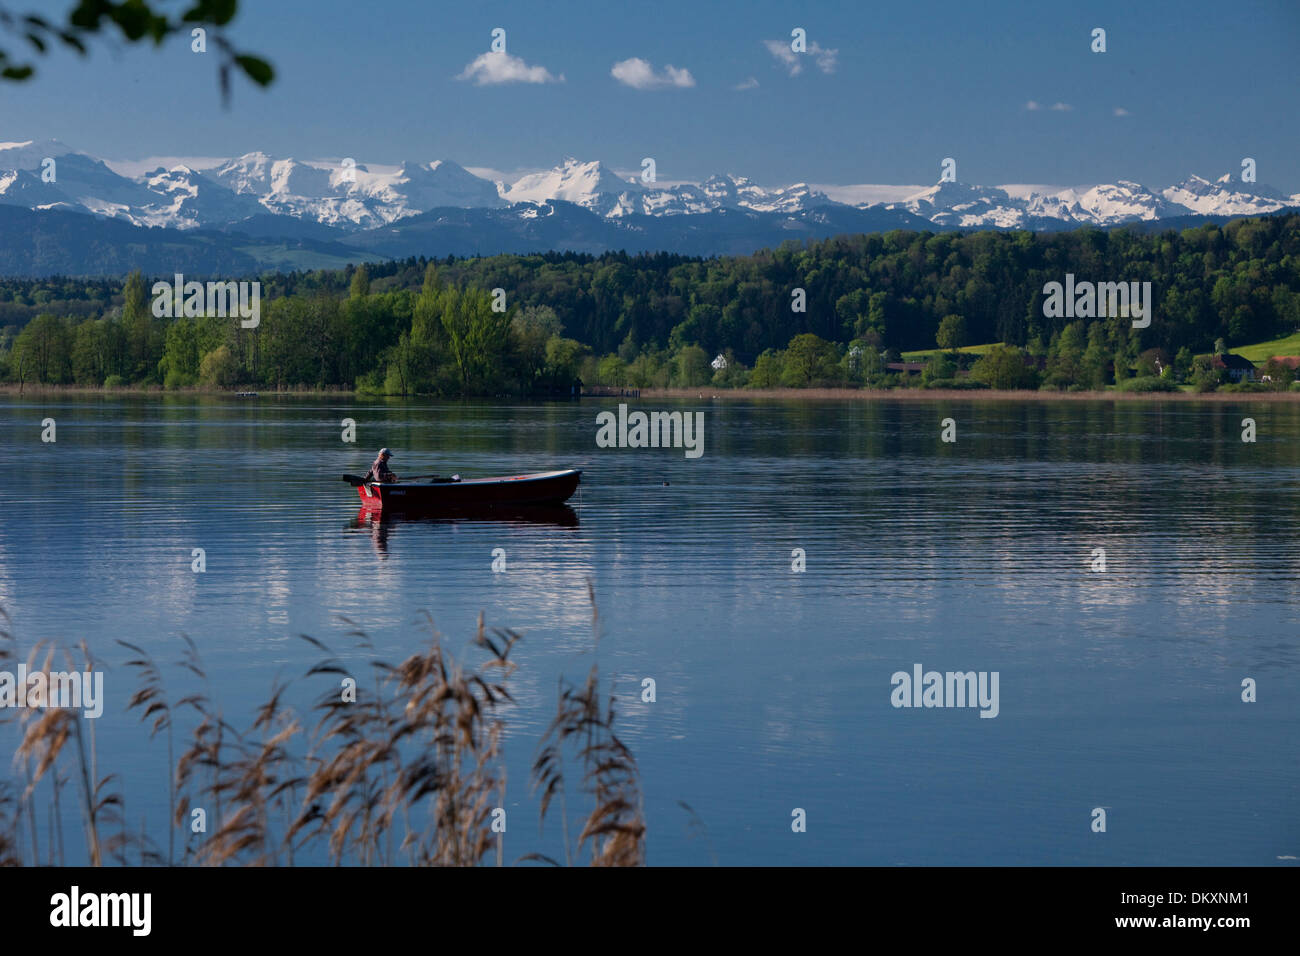 Switzerland, Europe, lake, ship, boat, ships, boats, Alps, canton, ZH, Zurich, spring, Greifensee, Lake Greifen, boat - Stock Image